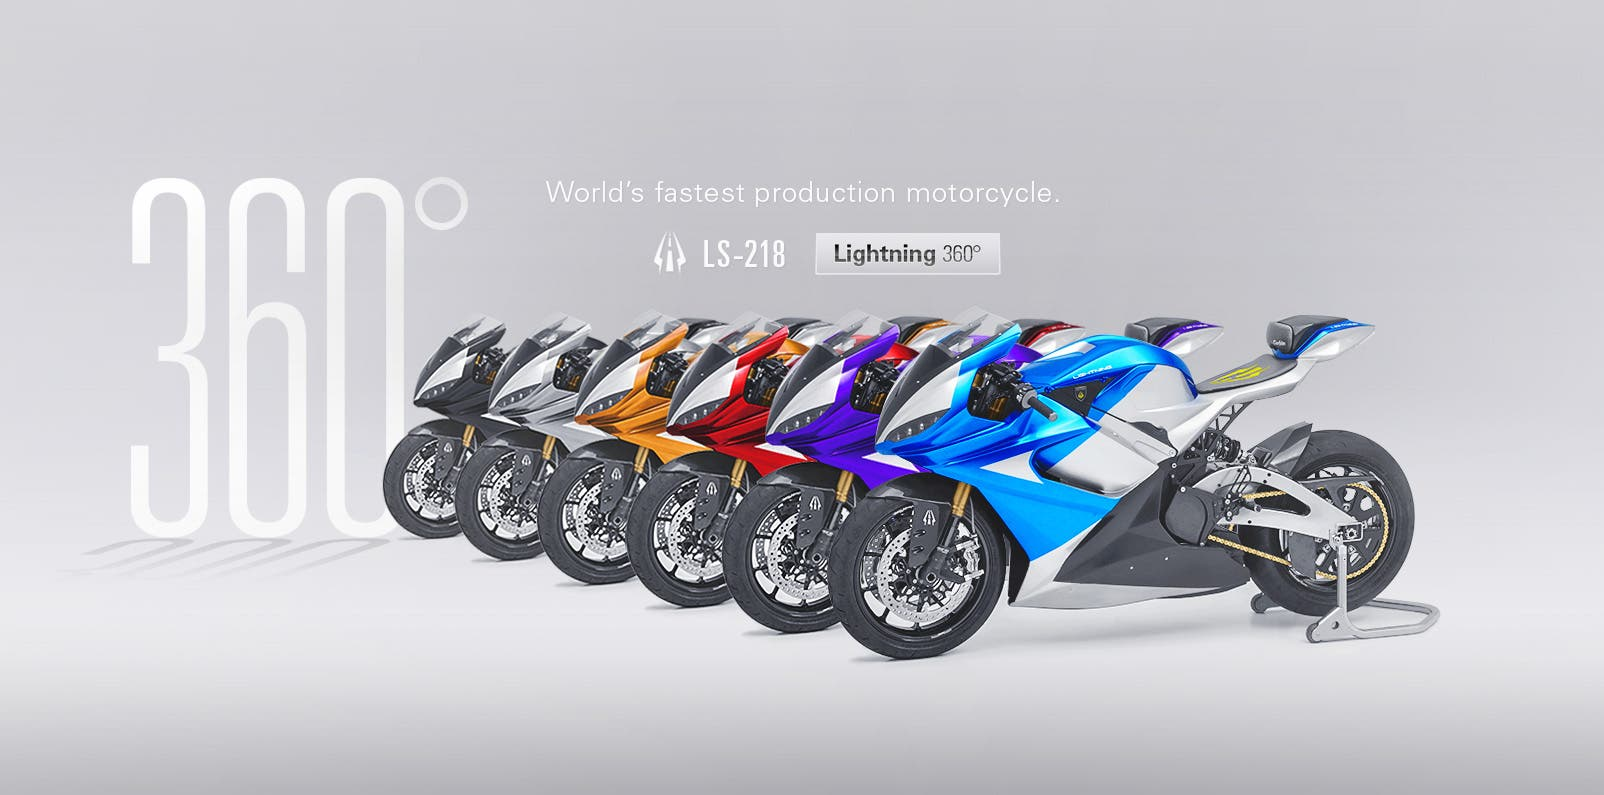 "Lightning Motorcycle LS218 Strike ""width ="" 1604 ""height ="" 795 ""srcset ="" https://cleantechnica.com/files/2019/01/Lightning-Motorcycle-LS218-Strike-3.jpg 1604w, https: // cleantechnica .com / files / 2019/01 / Lightning-Motorcycle-LS218-Strike-3-270x134.jpg 270w, https://cleantechnica.com/files/2019/01/Lightning-Motorcycle-LS218-Strike-3-768x381. jpg 768w, https://cleantechnica.com/files/2019/01/Lightning-Motorcycle-LS218-Strike-3-570x283.jpg 570w ""tailles ="" (largeur maximale: 1604px) 100vw, 1604px"